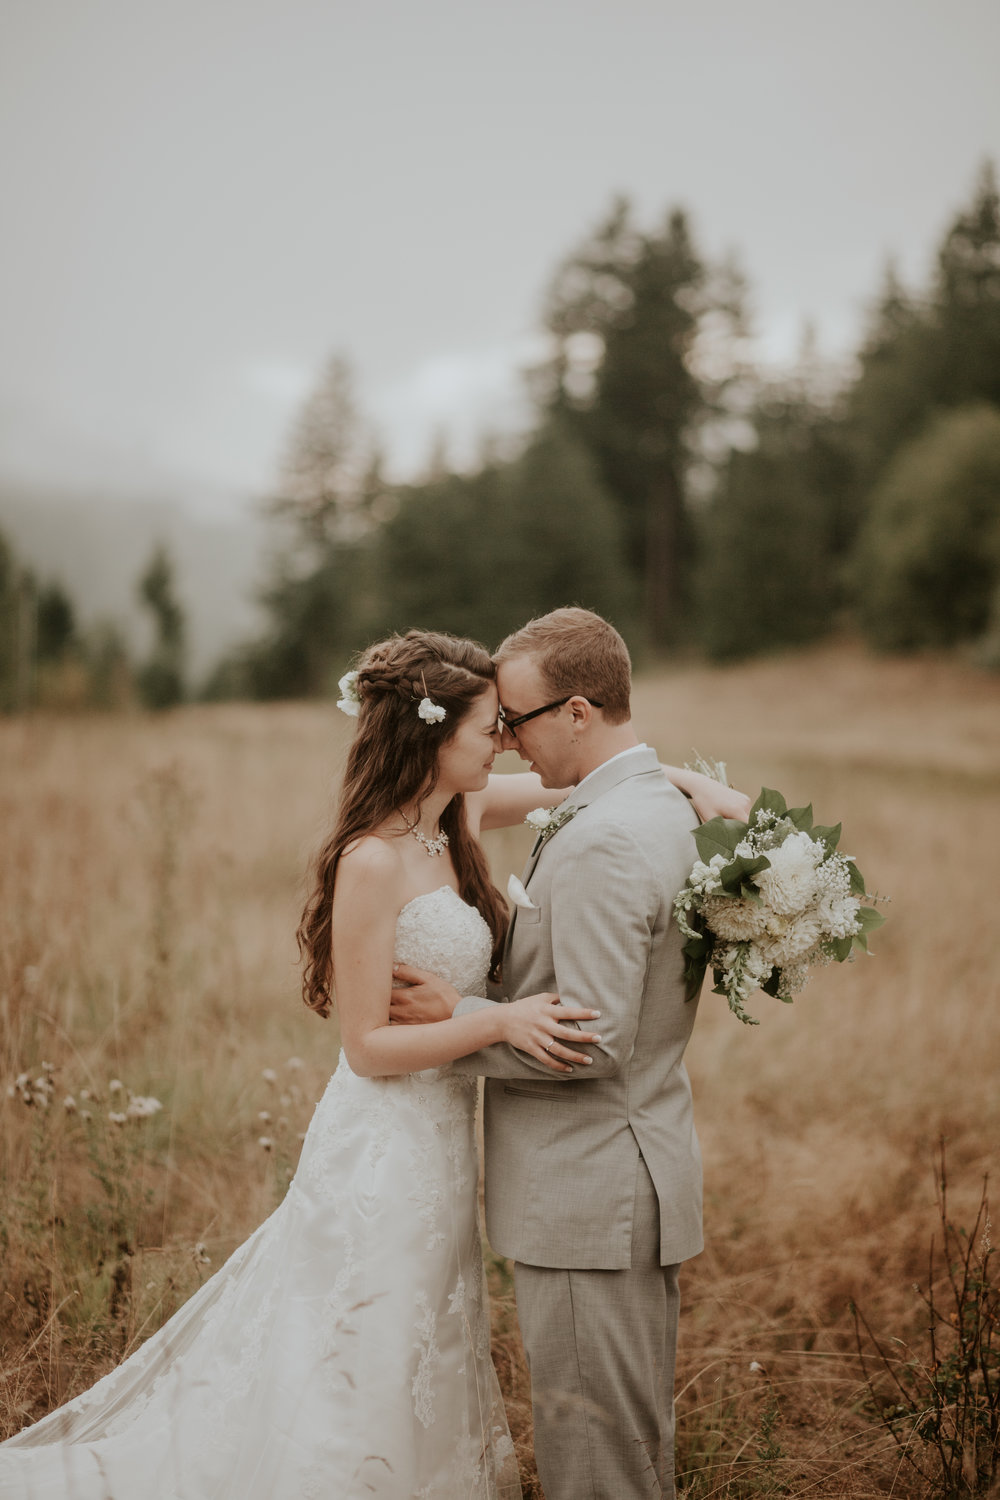 Port-Angeles-elopement-wedding-pnw-olympic-peninsula-photographer-portrait-kayladawnphoto-kayla-dawn-photography-olympic-national-park-88.jpg